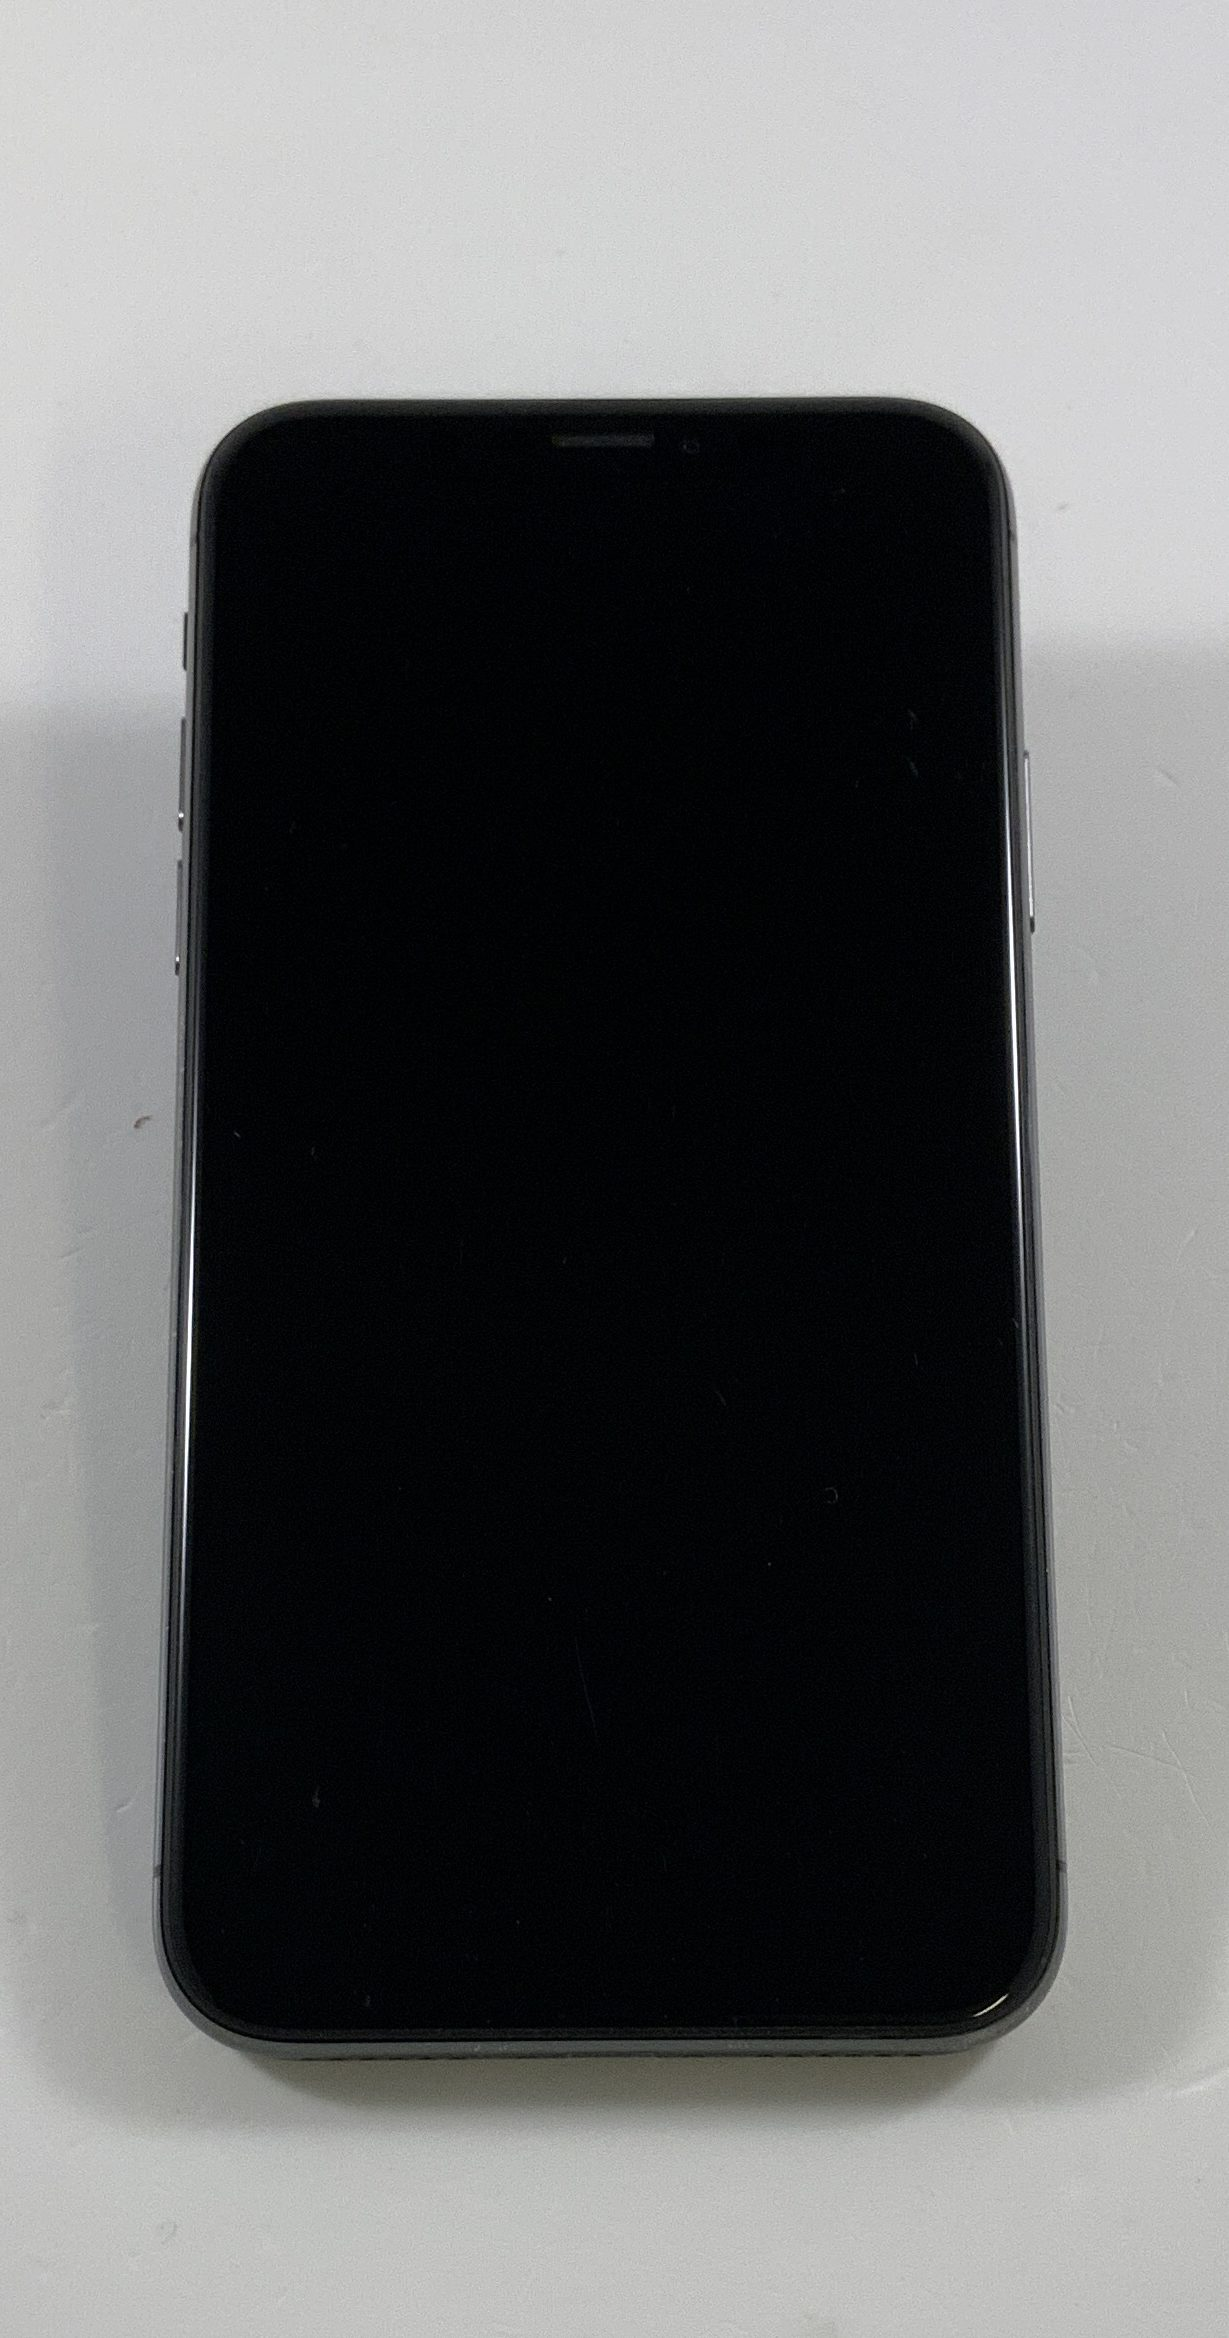 iPhone X 256GB, 256GB, Space Gray, image 1